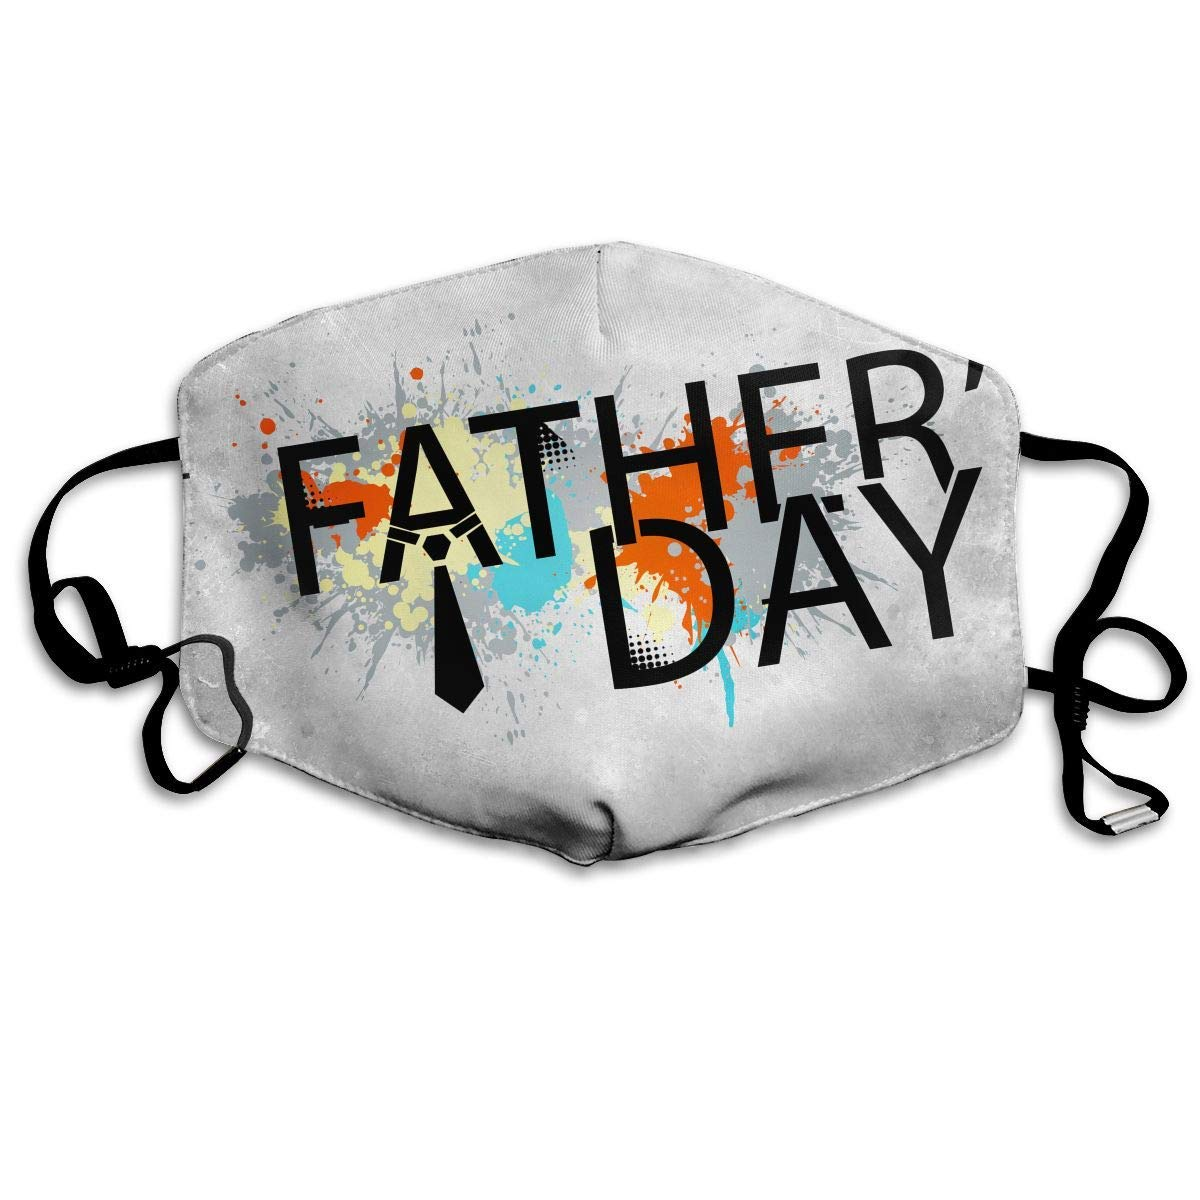 Daawqee Máscara de Boca, Antipolvo Cubierta de Boca Fathers Day Print Reusable Washable Earloop Máscara de Boca for Men Women